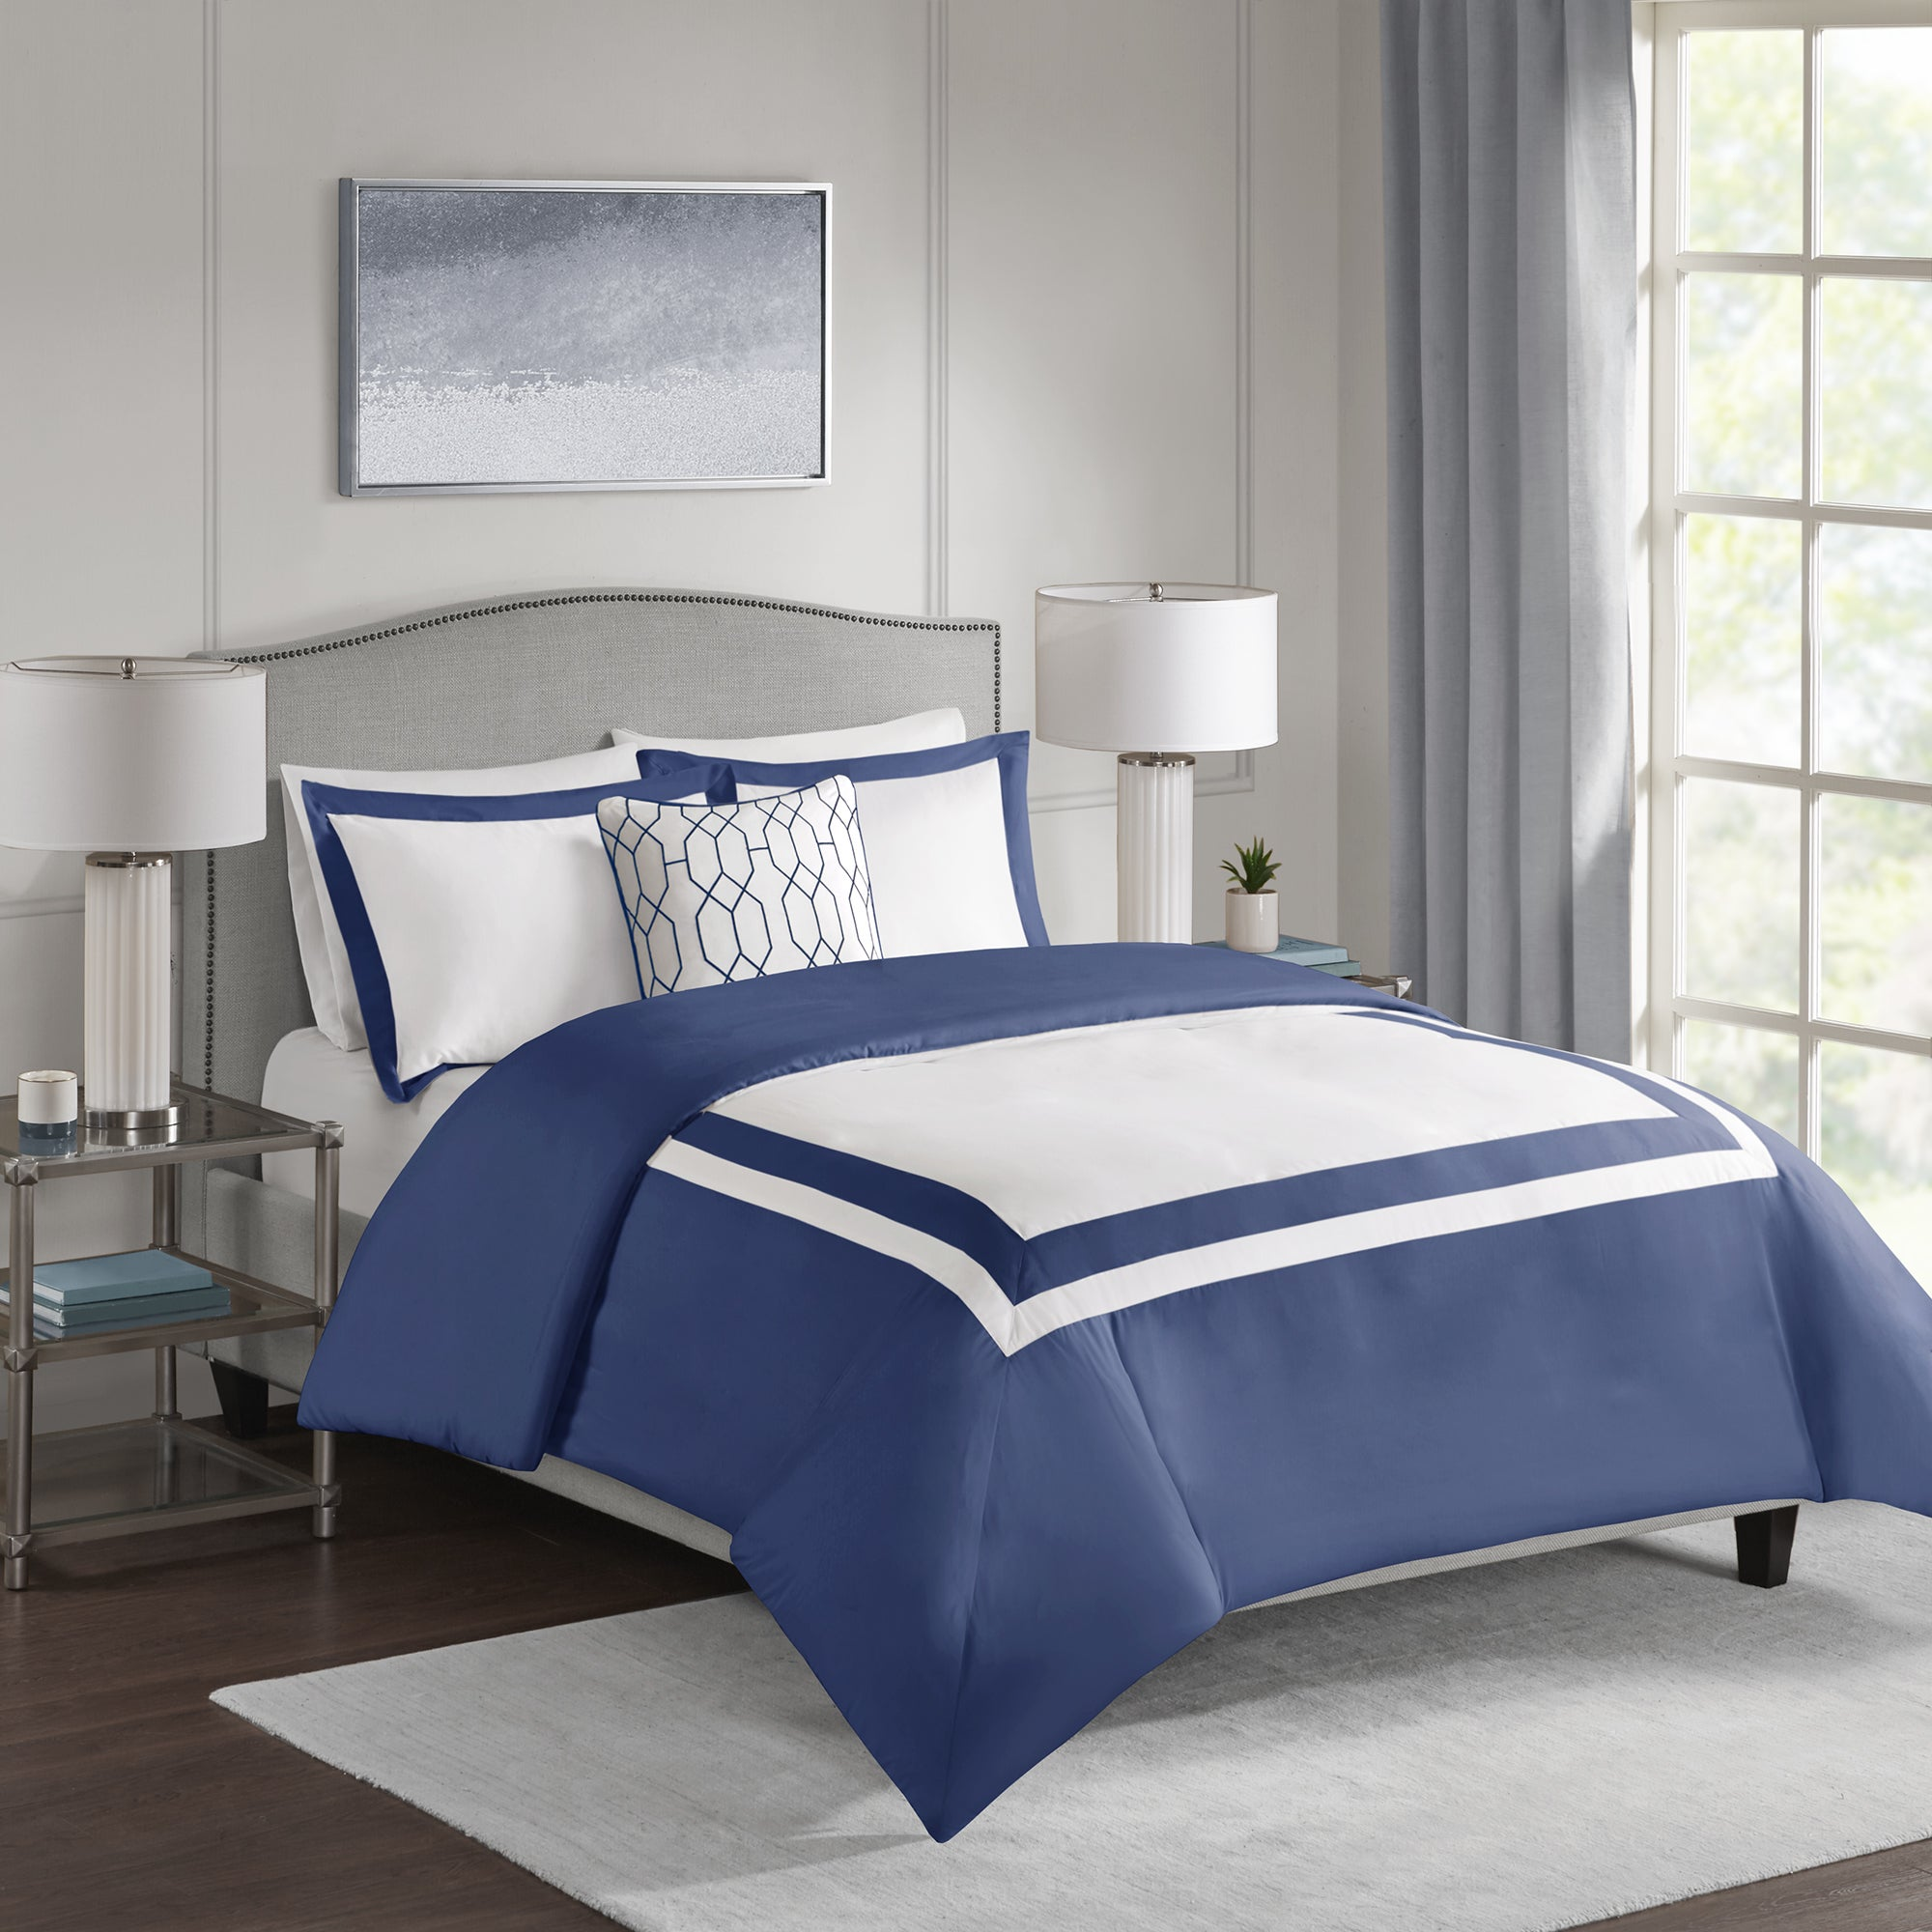 Shop 510 design hanson navy 4 piece duvet cover set free shipping today overstock com 20507516